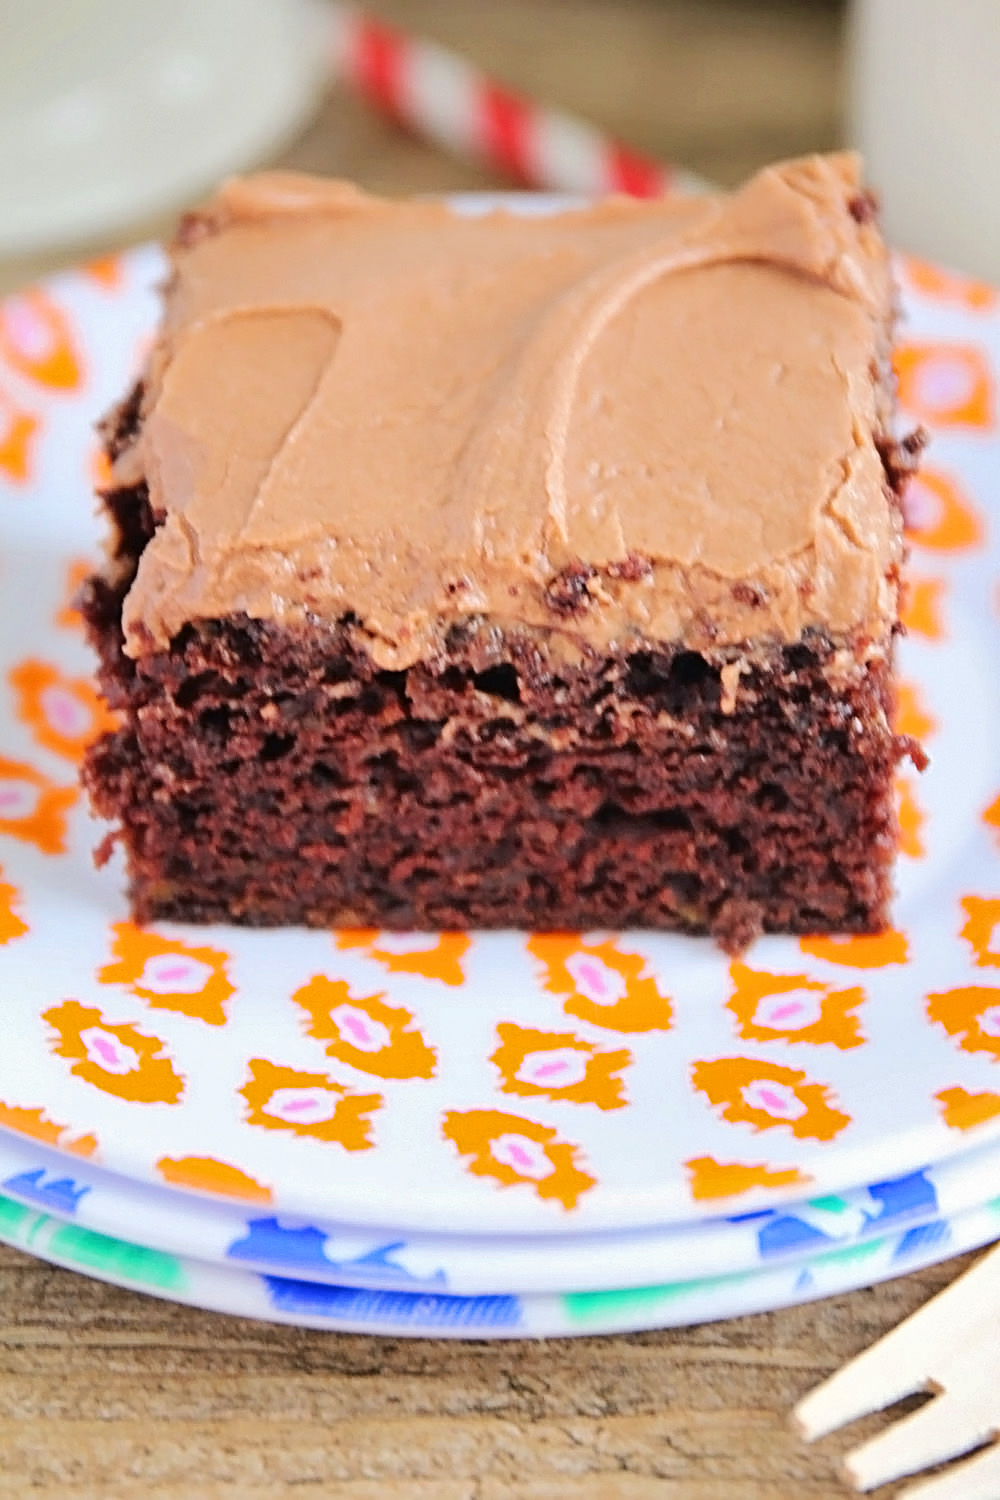 This chocolate zucchini cake is so rich and delicious, you would never guess there is over two cups of zucchini inside. The perfect way to use up all that summer zucchini!